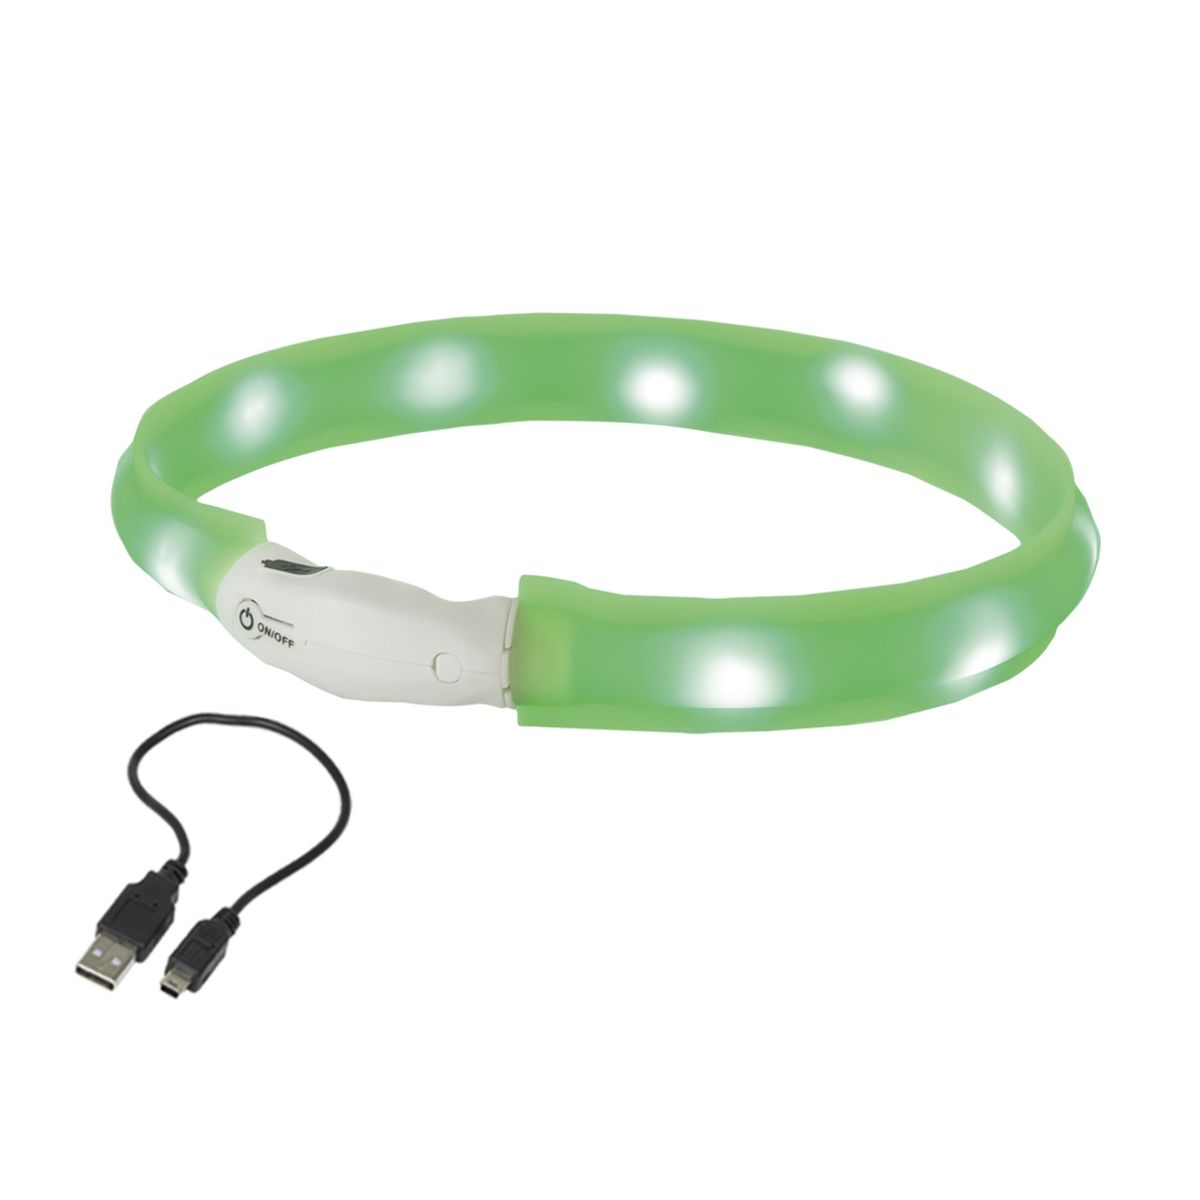 NB LED B.WIDE VISIBLE GROEN S N 00001